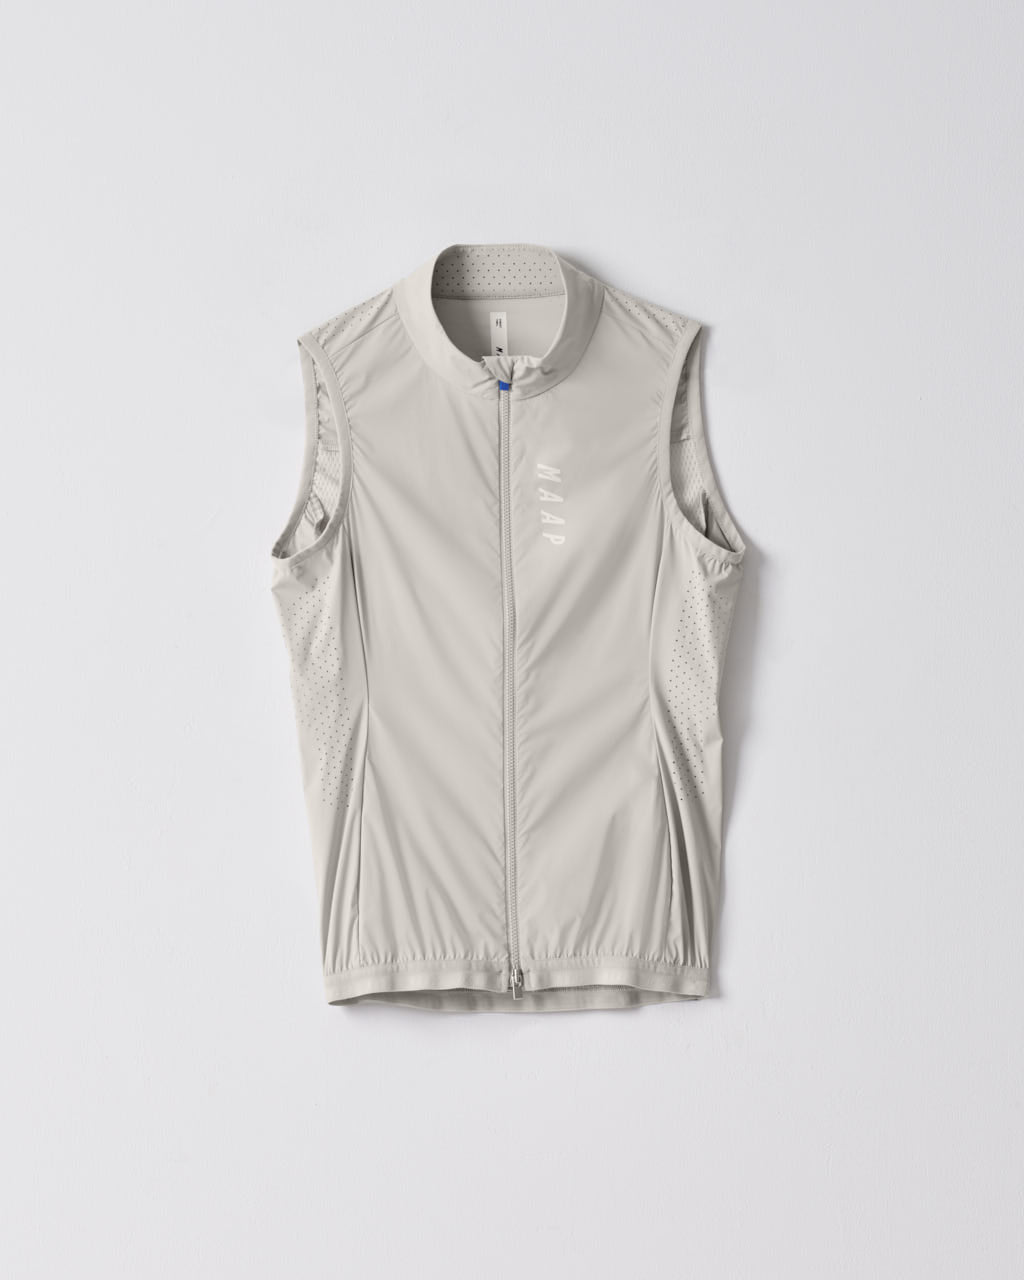 MAAP Women's Draft Team Vest - Fog